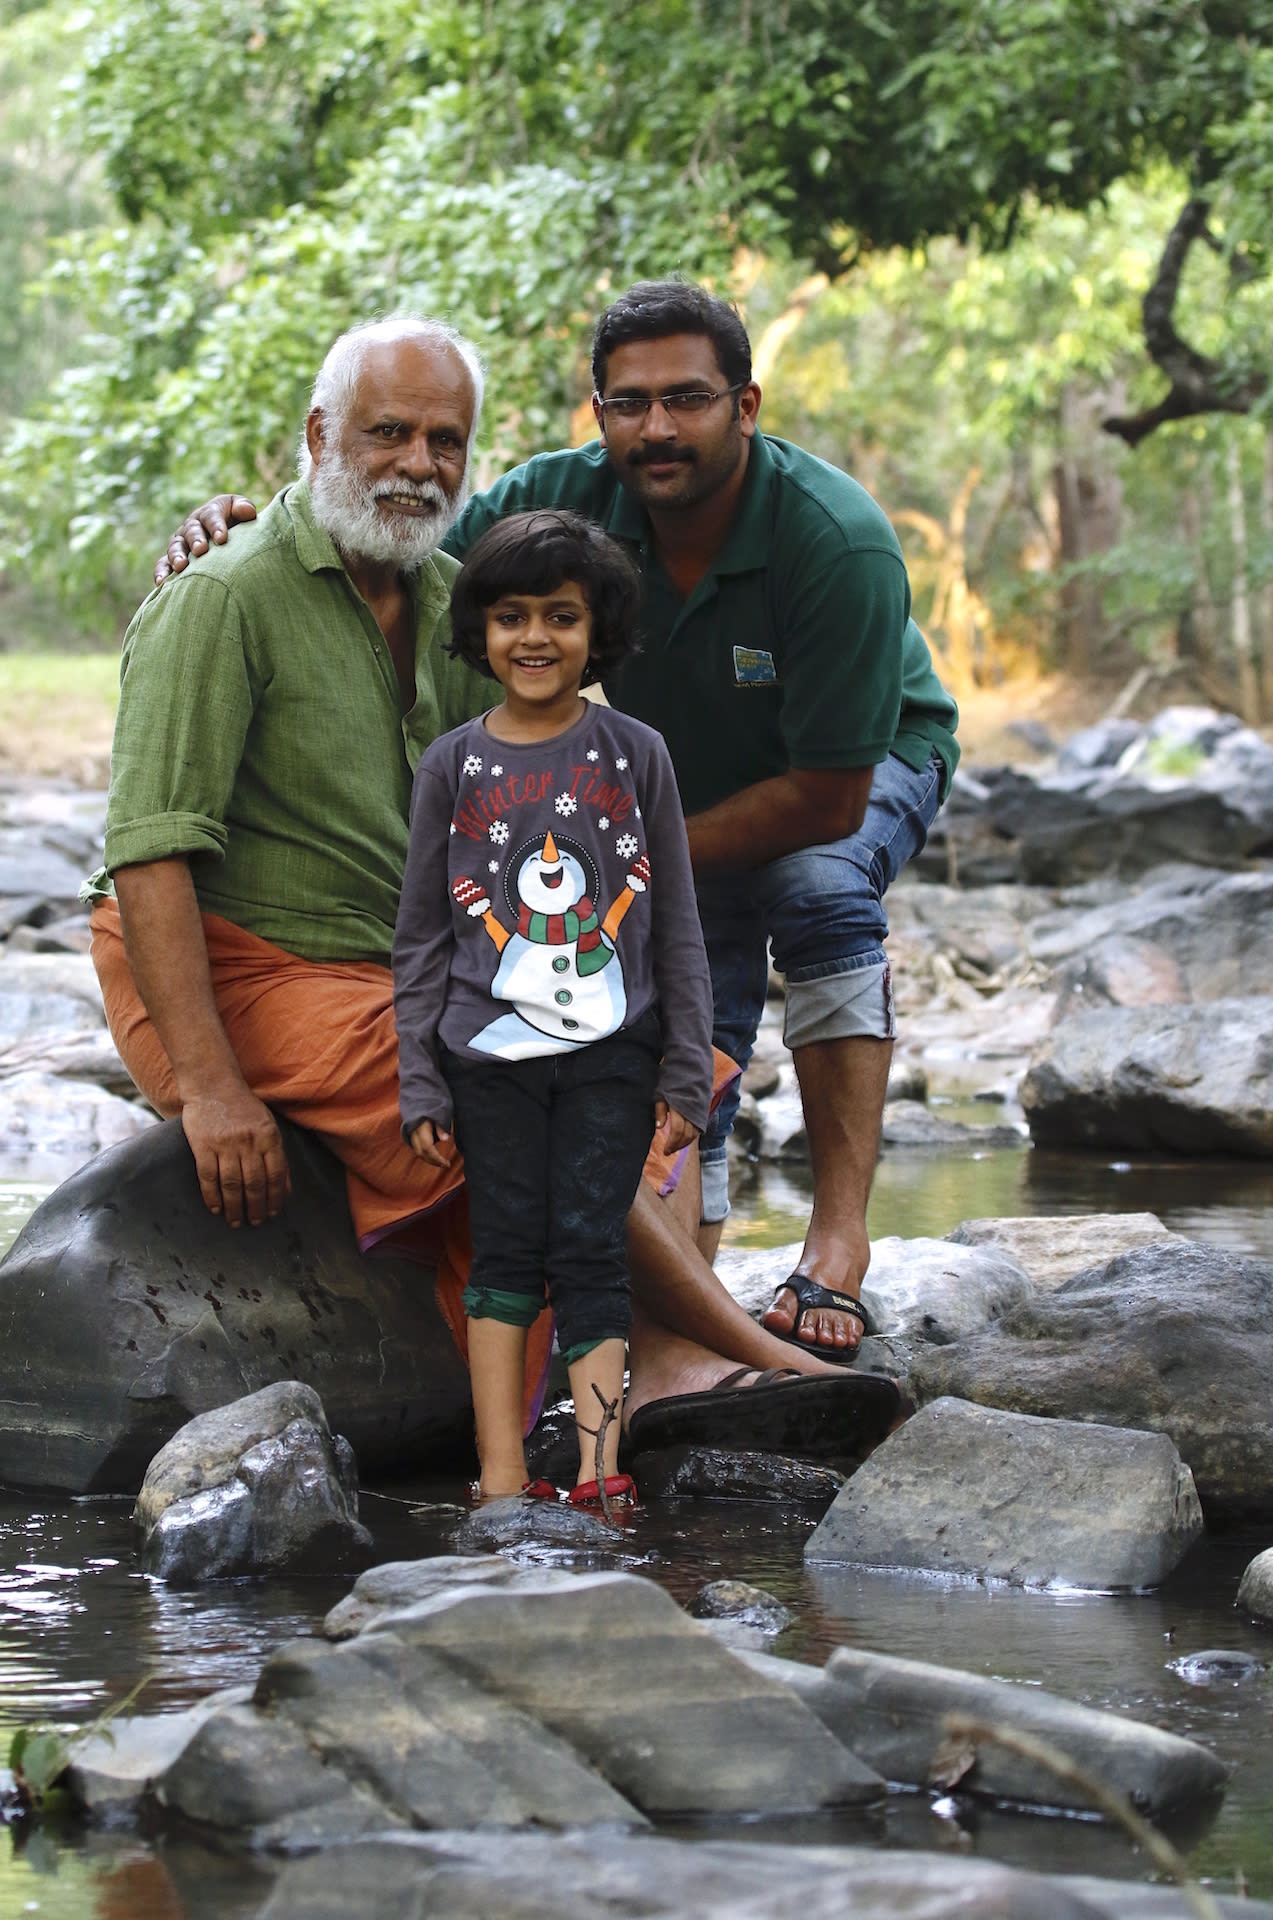 badusha with son and granddaughter in the forest